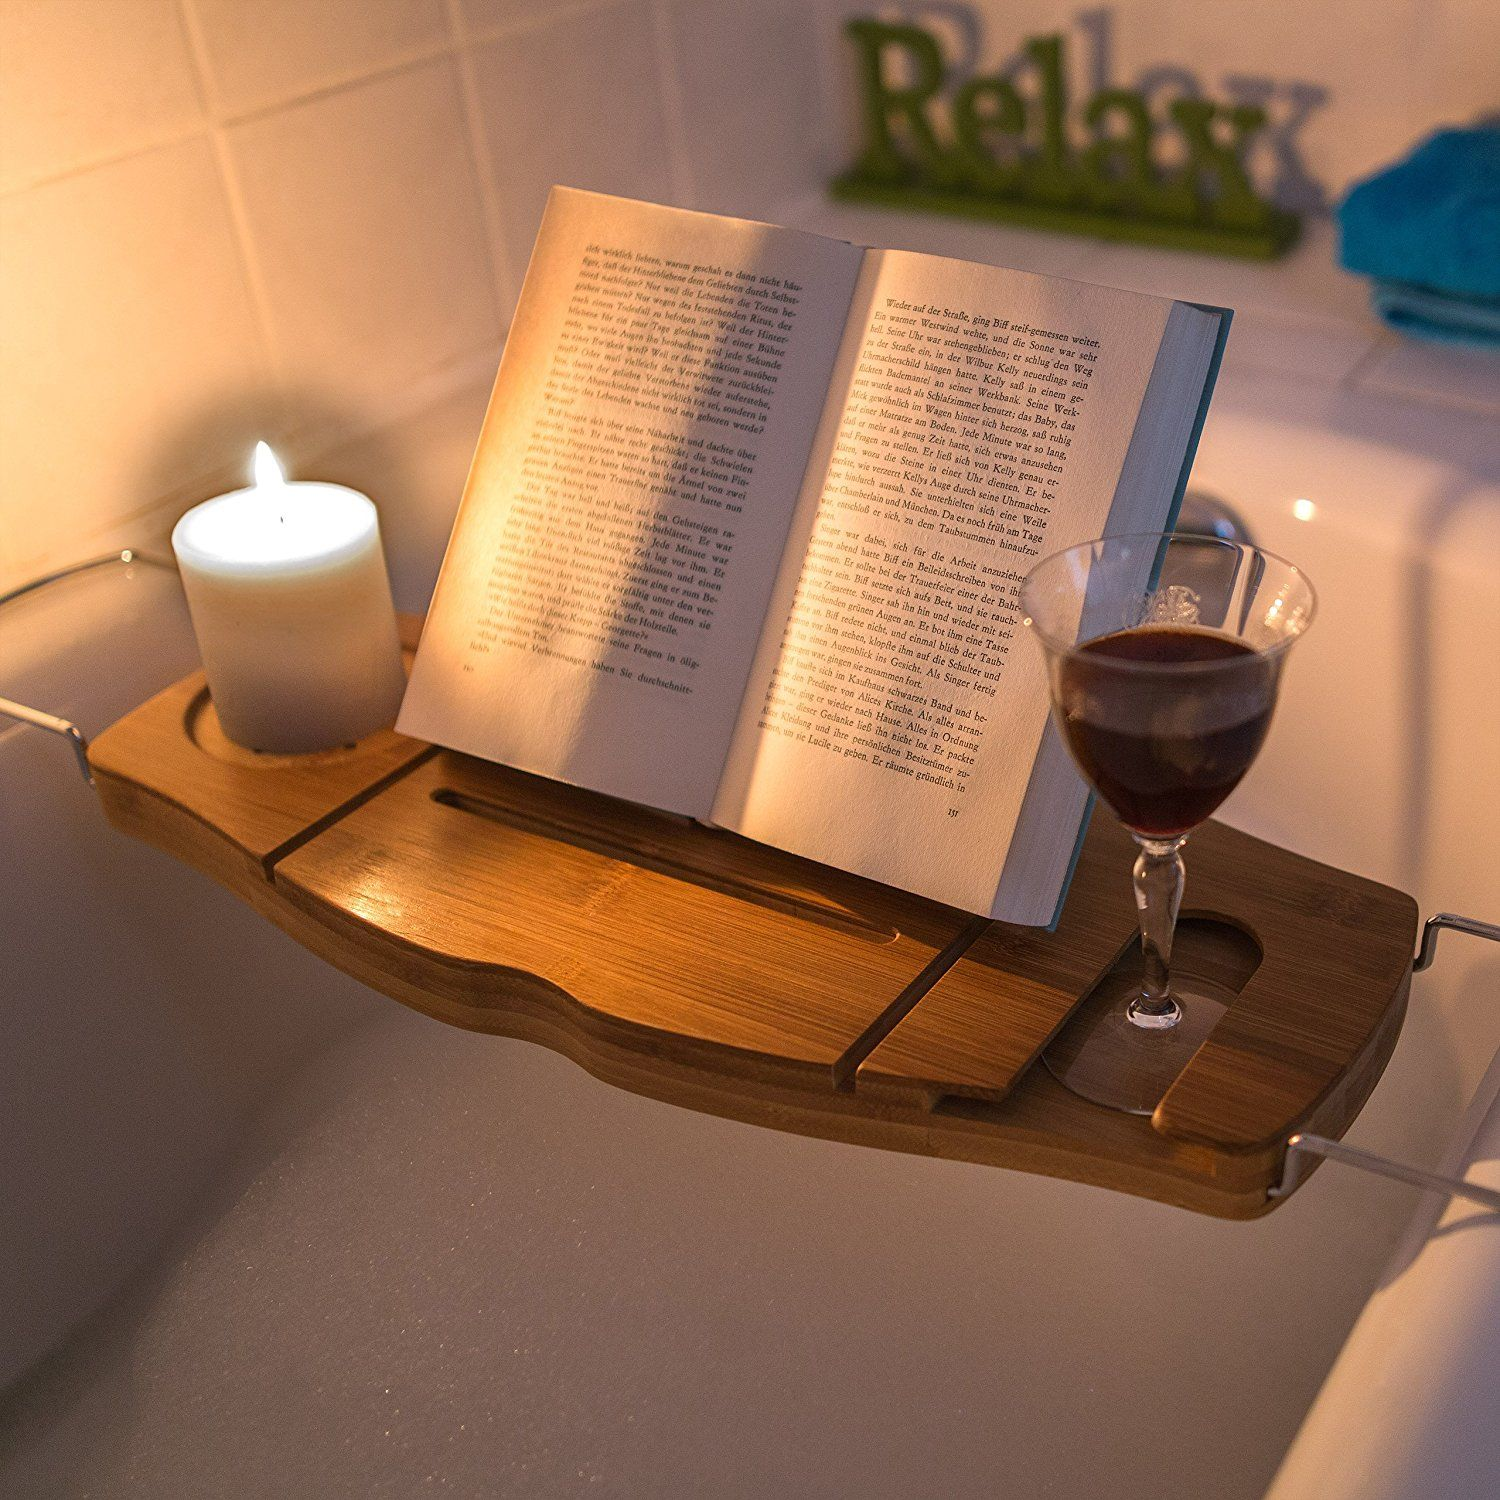 Relaxdays Bathtub Caddy Bath Tray With Book Stand: 17.5 x 70 x 21.5 ...